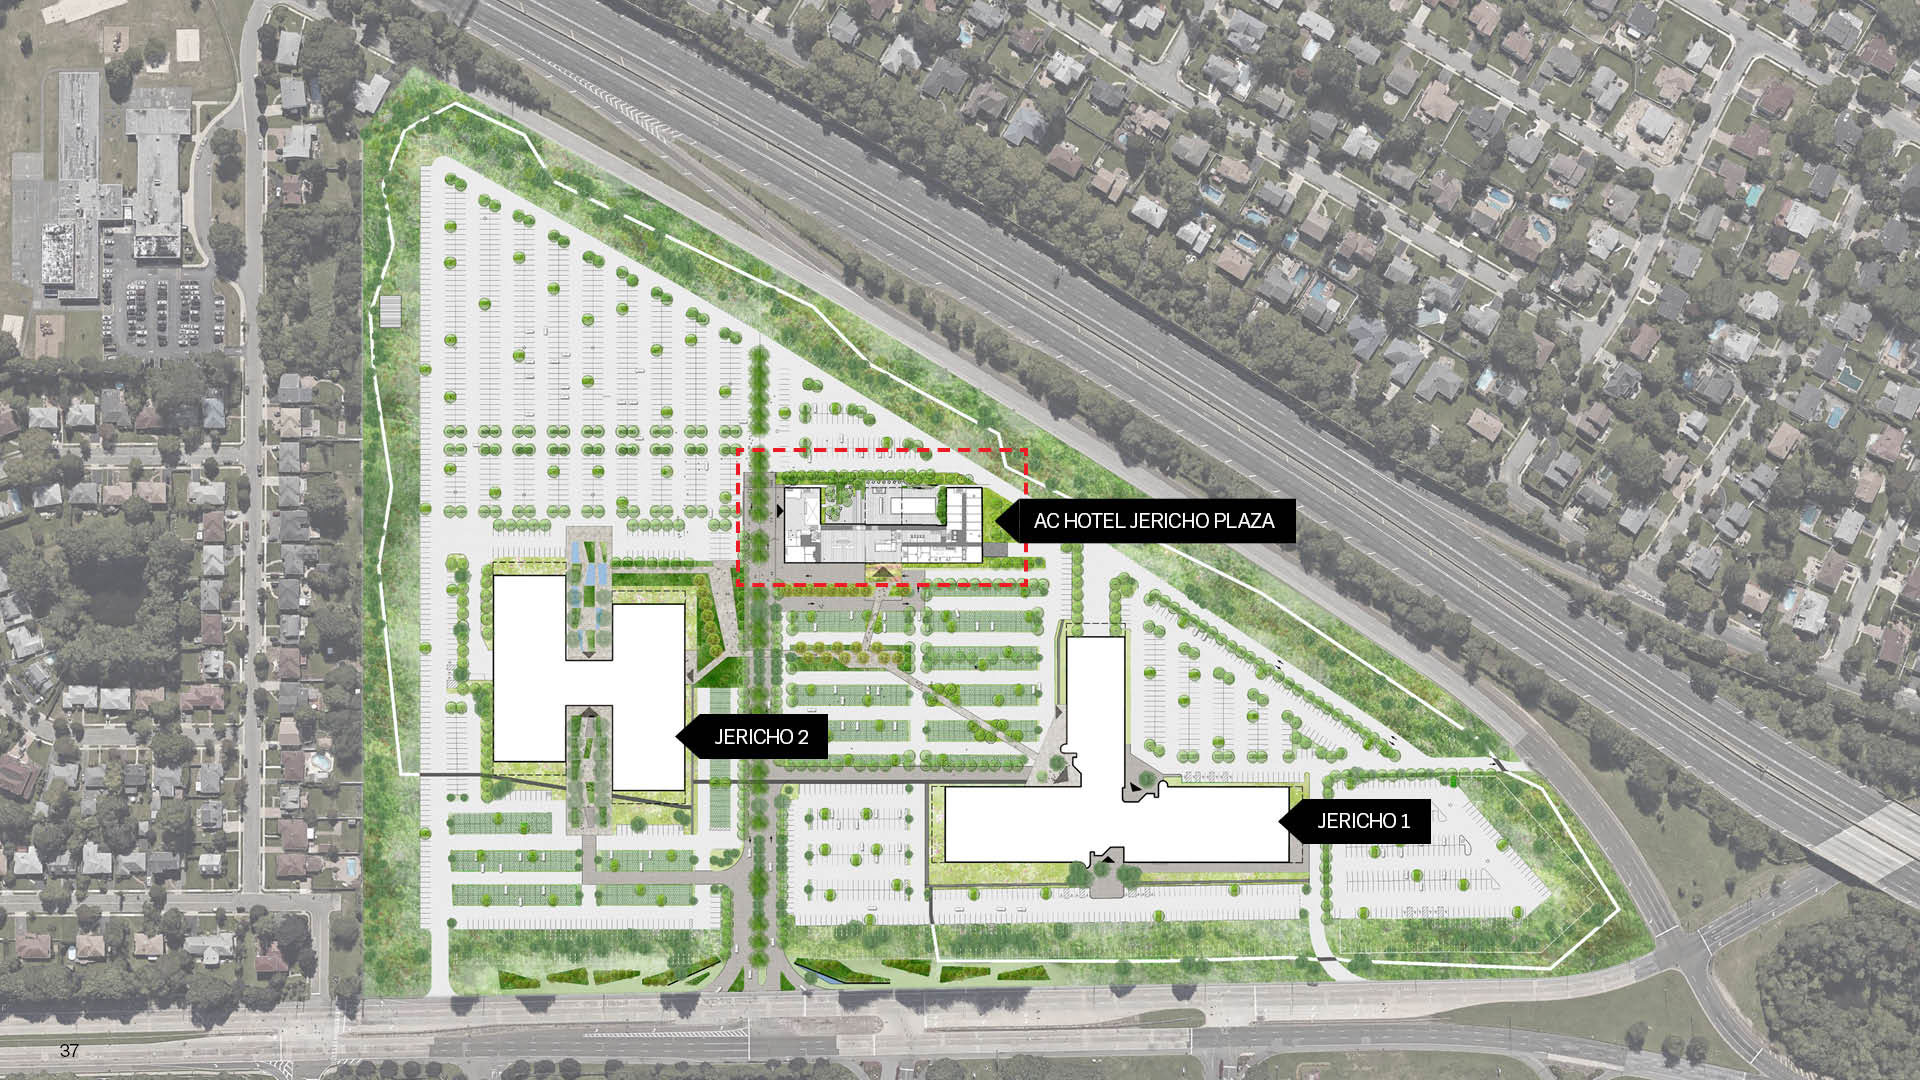 Site plan of the Jericho Plaza Hotel project in Jericho, New York designed by the architecture studio Danny Forster & Architecture